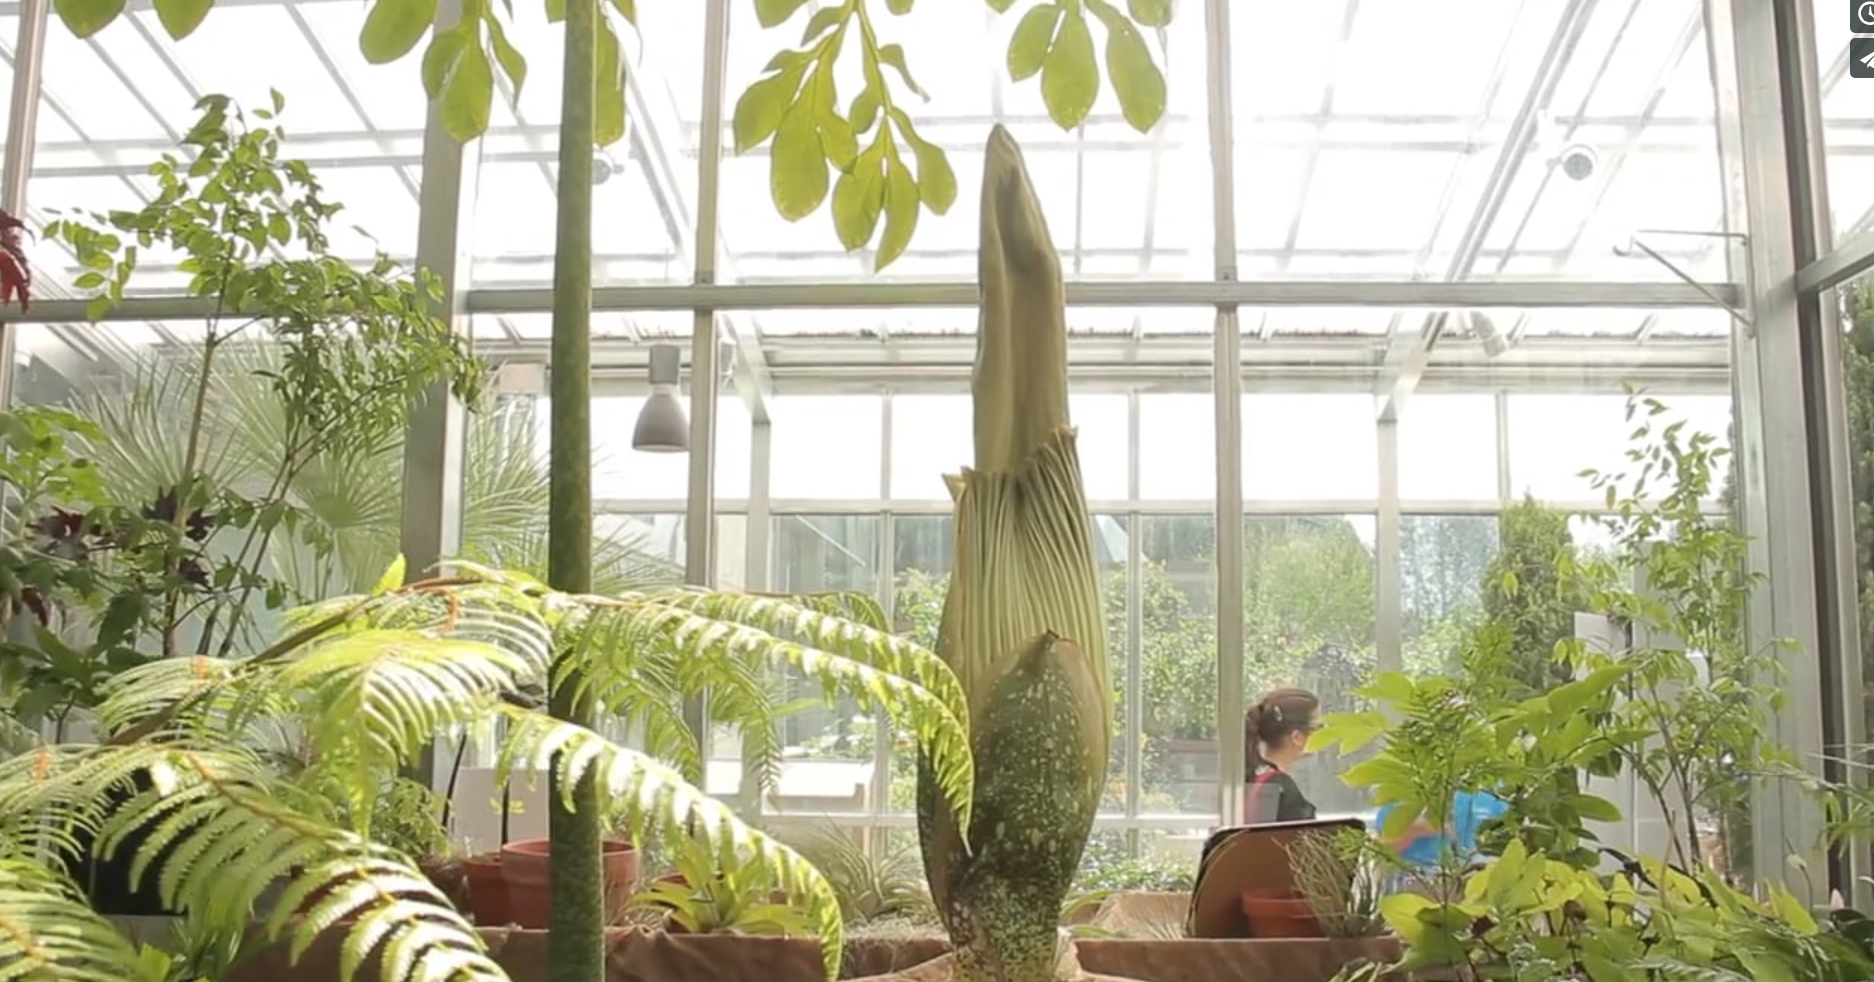 Smelly Corpse Flower Draws Crowds at the Denver Botanic Gardens